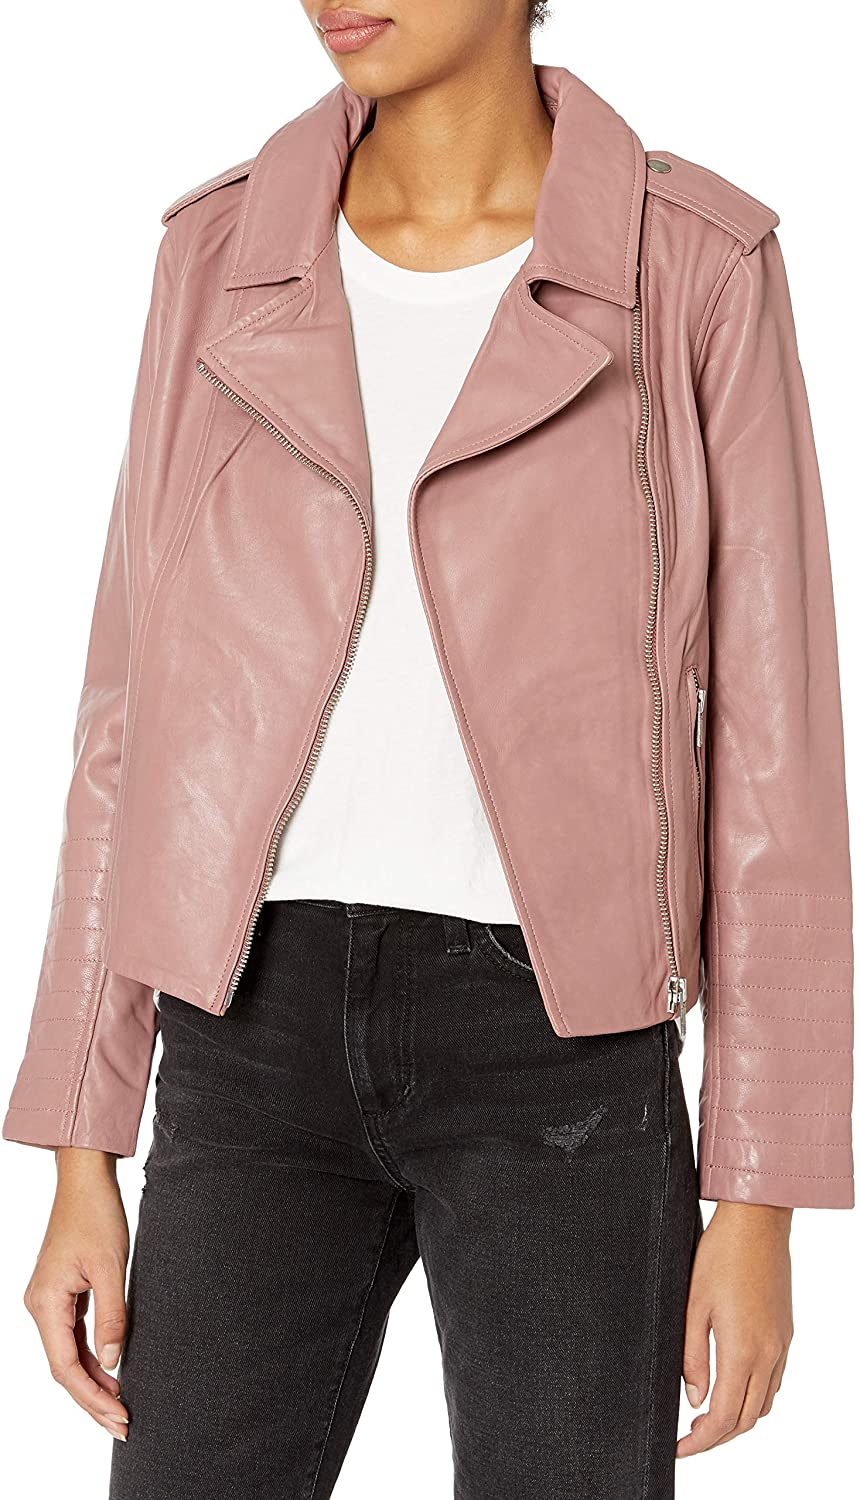 BB Dakota Women's Washed Leather Jacket, Rose Taupe, Small